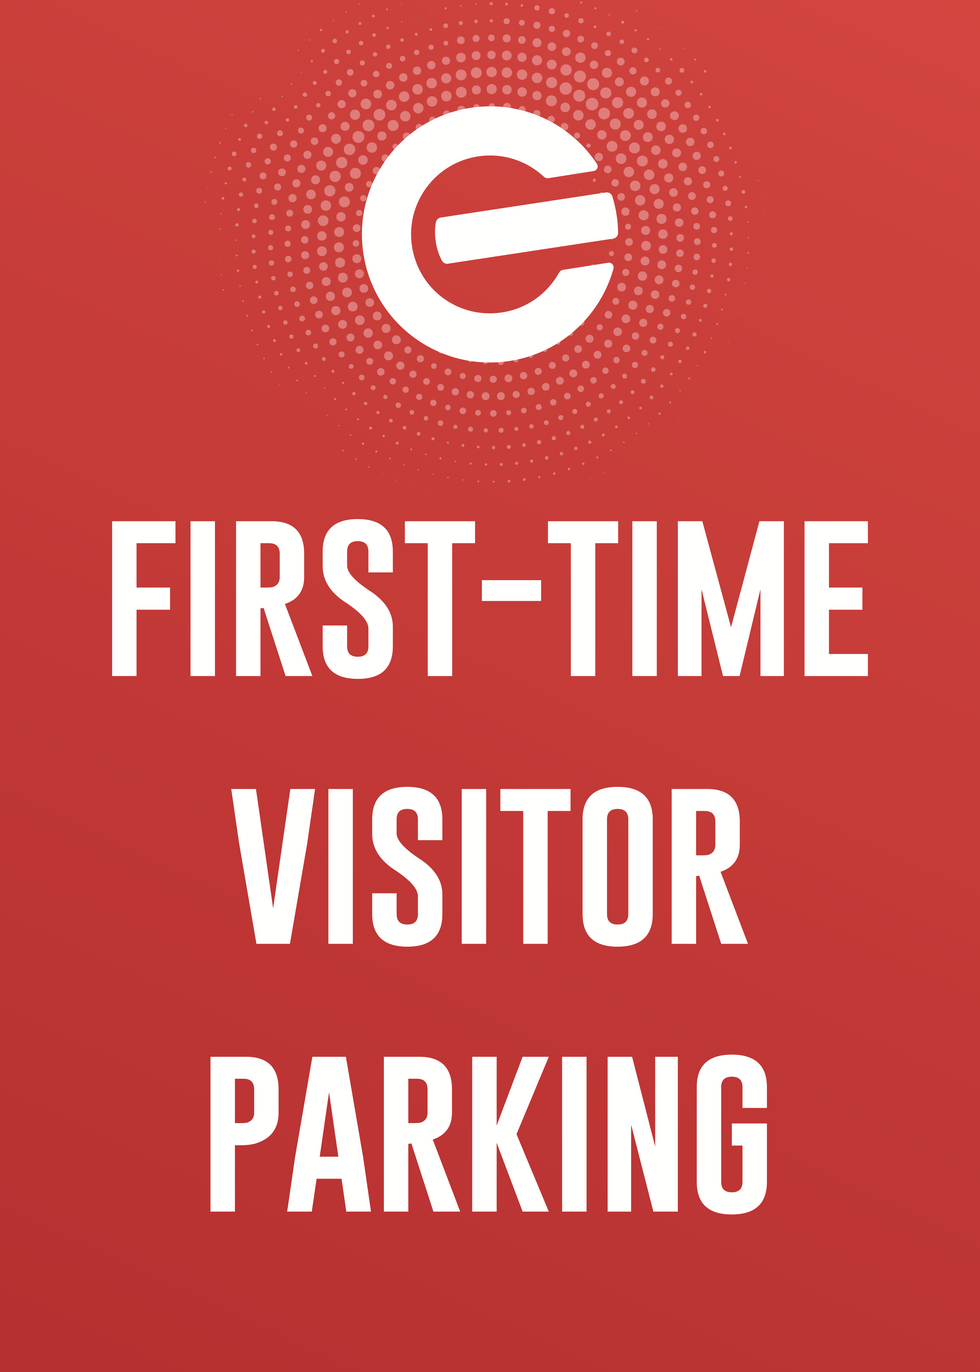 FT_parking_signs_proofs.png